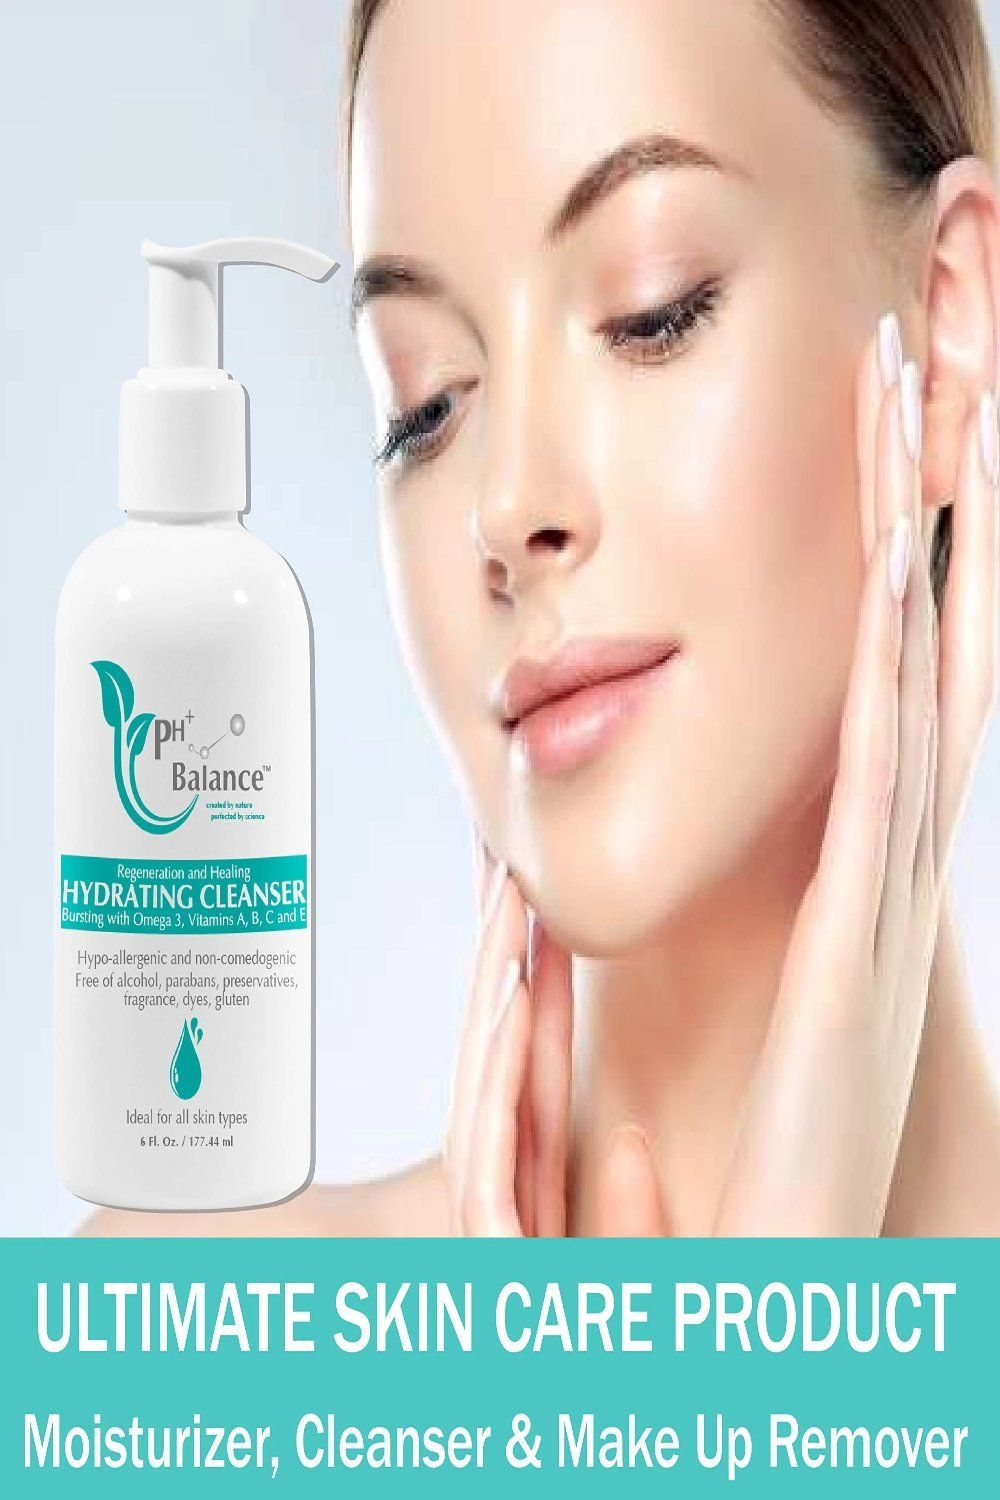 PH BALANCE SKINCARE Hydrating Cleanser Daily Facial & Body